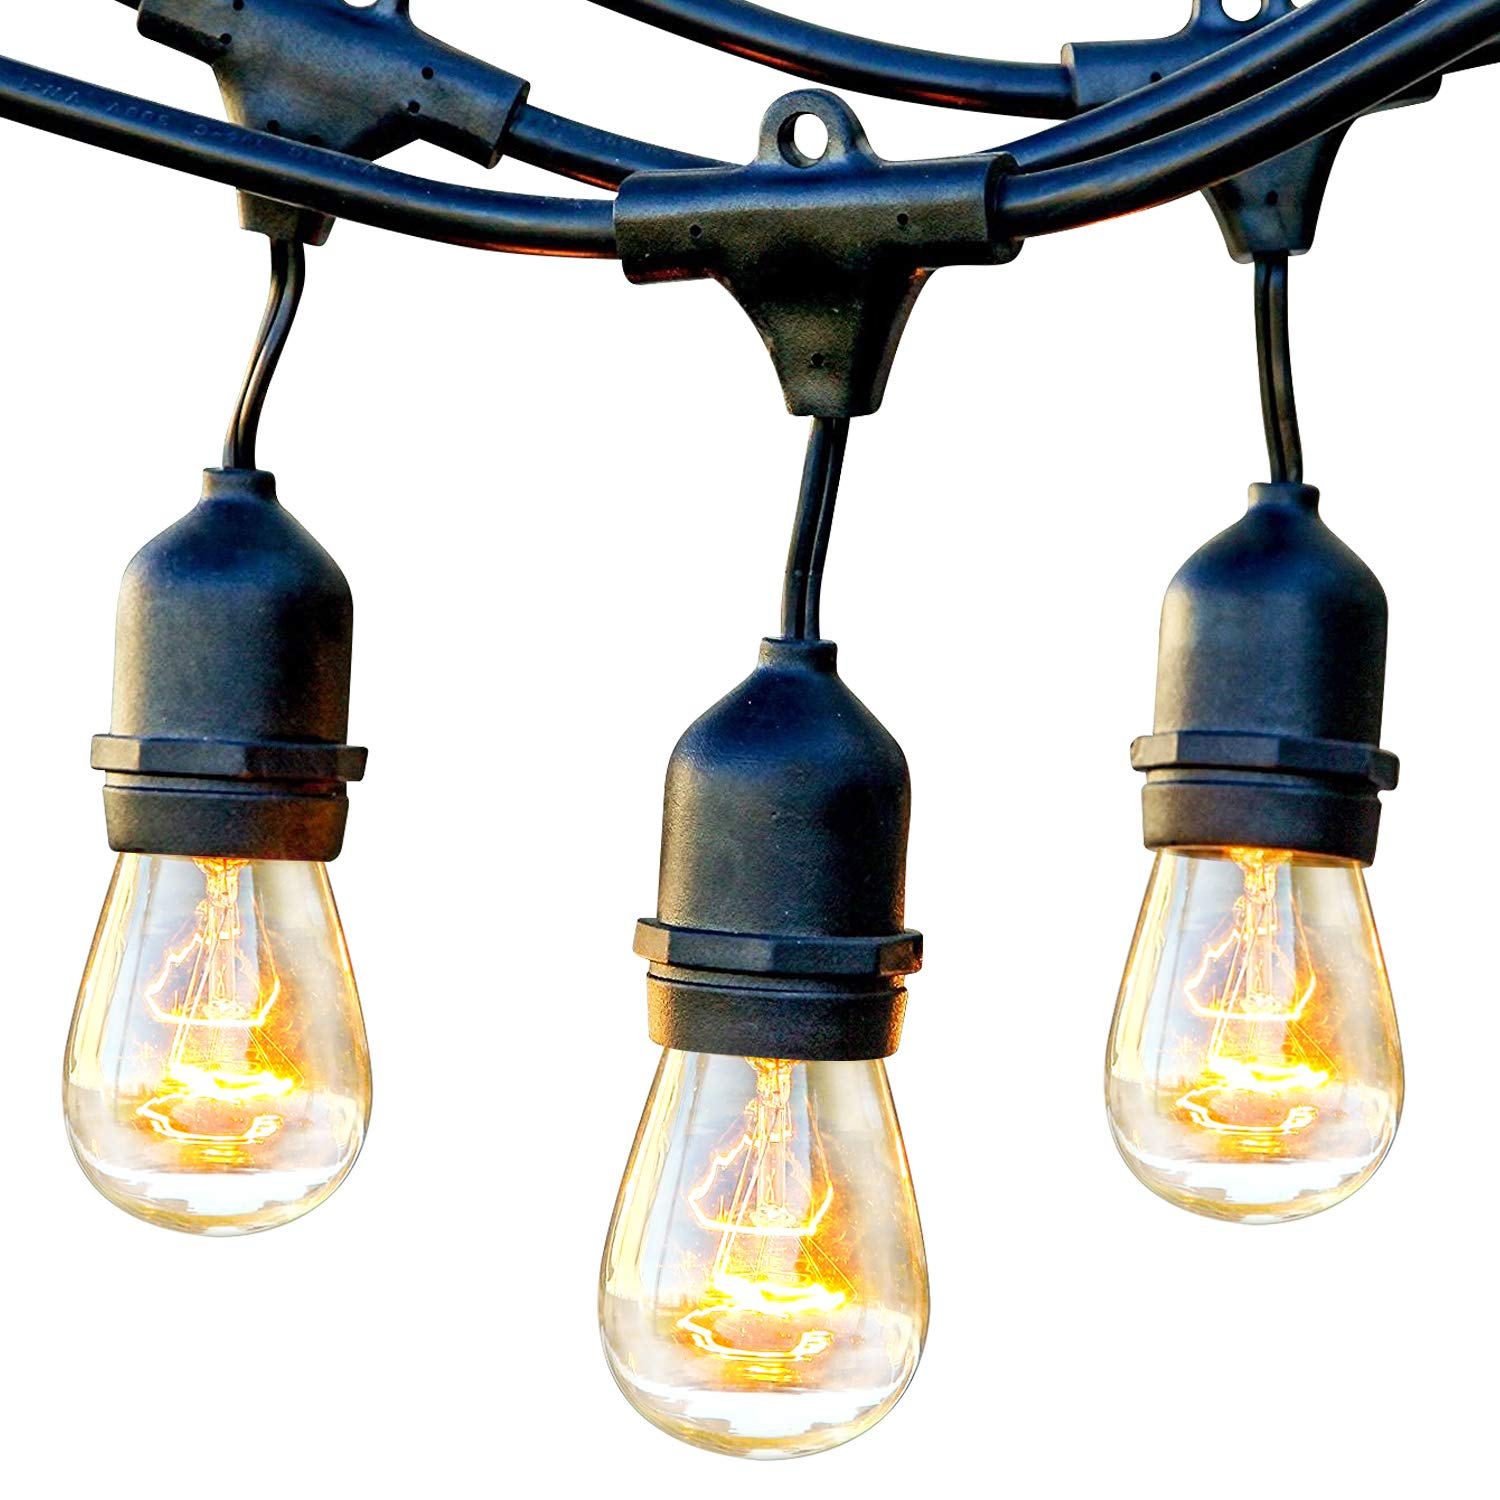 Brightech Ambience Pro Hanging Vintage String Lights